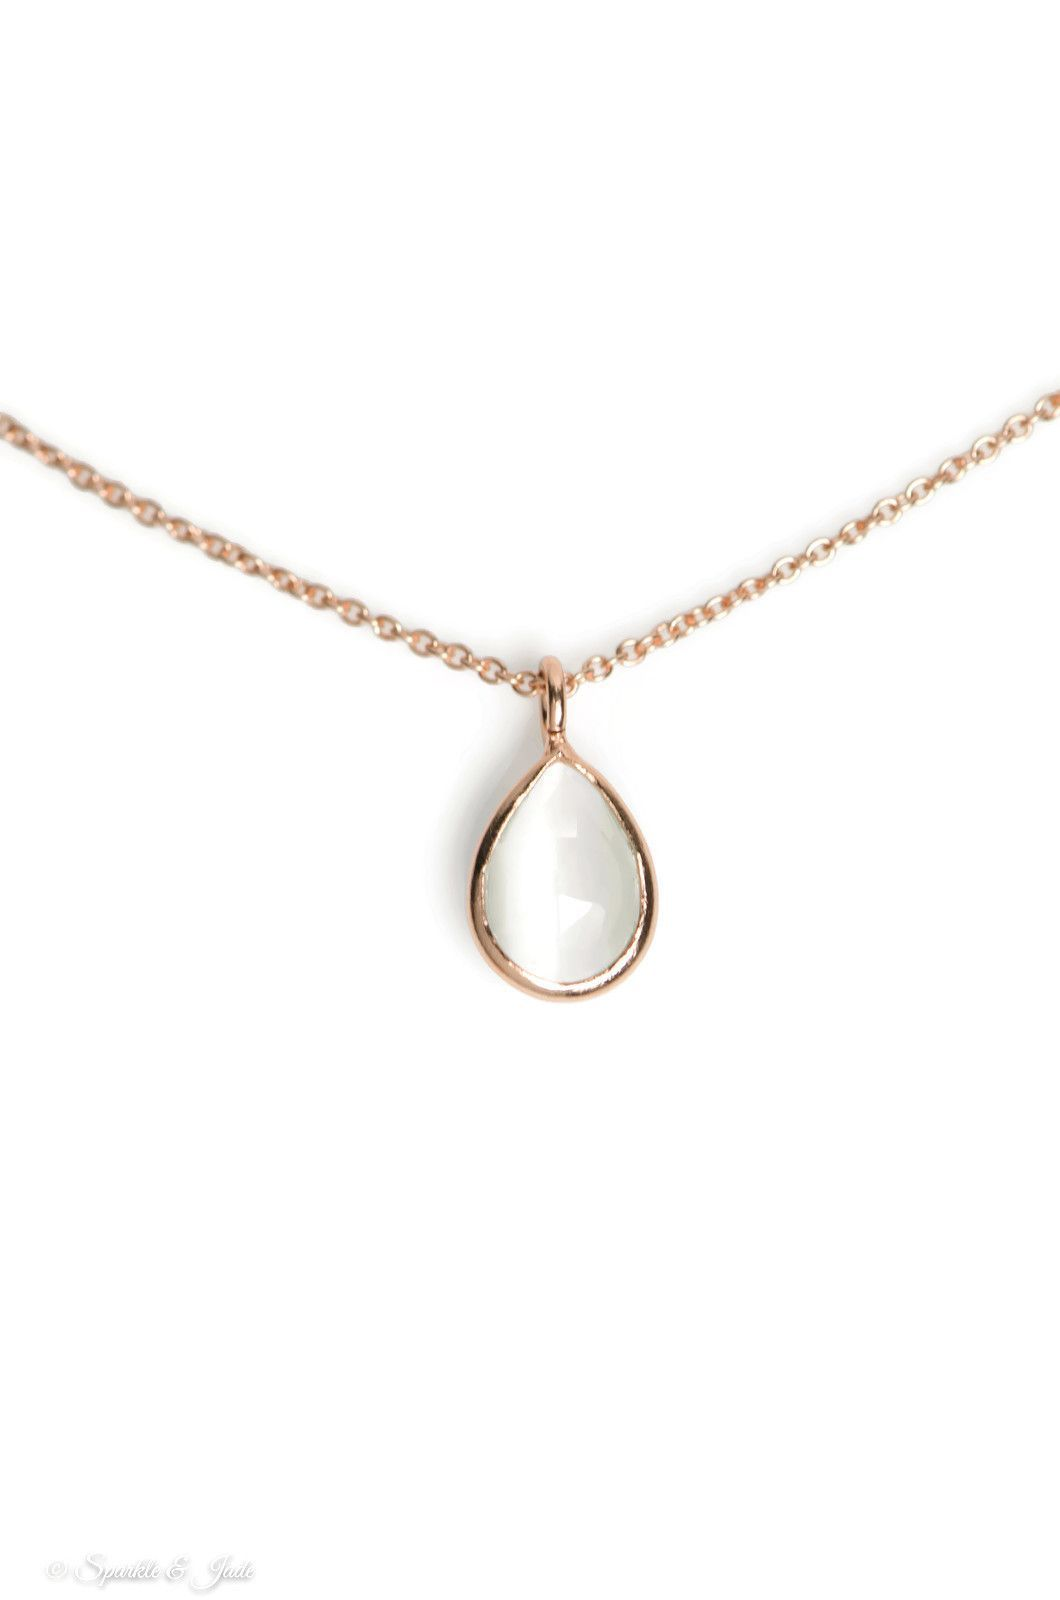 ed constrain teardrop necklaces fmt peretti fit id co wid jewelry in elsa gold tiffany necklace hei pendants